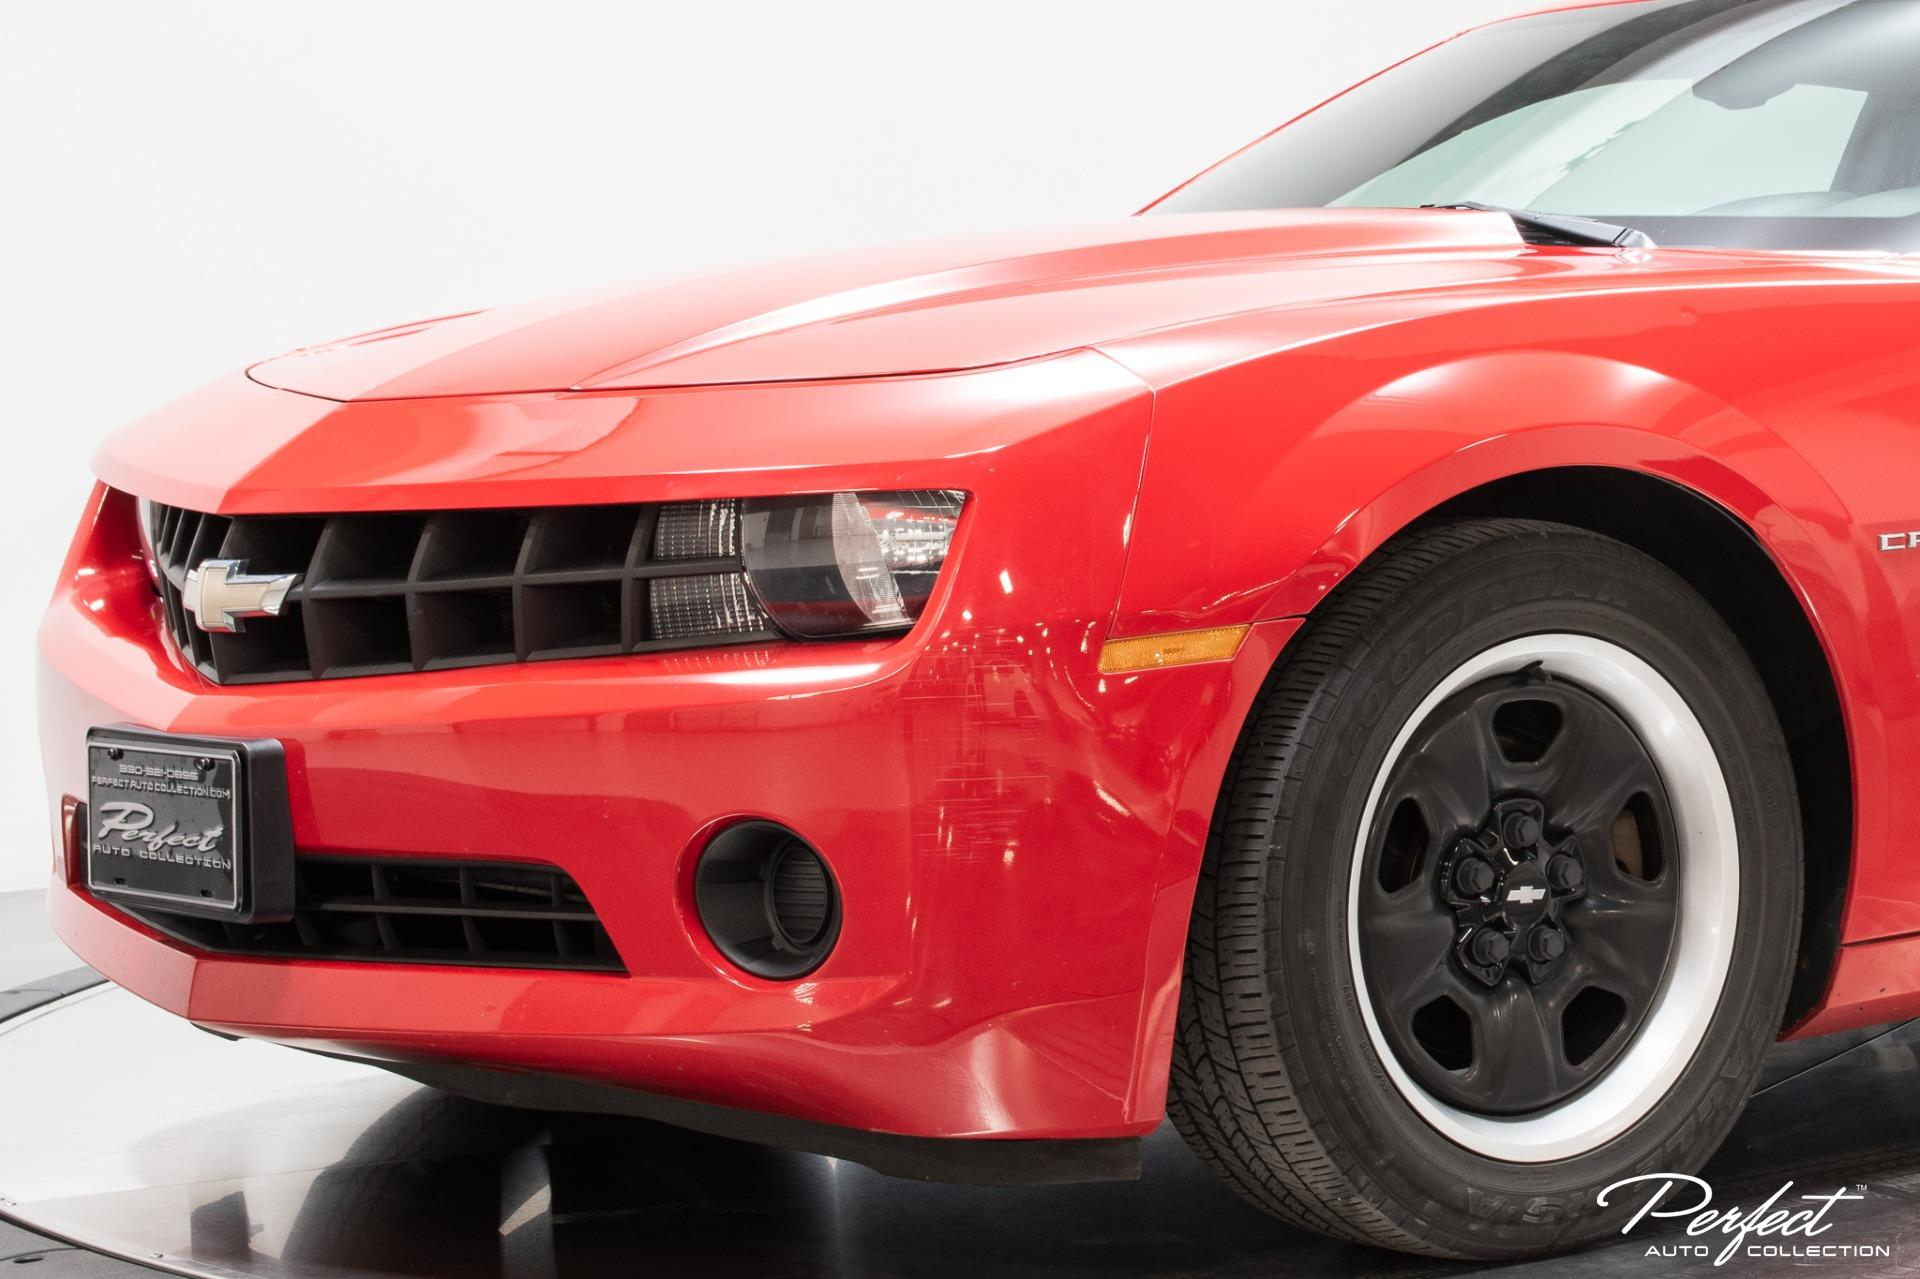 Used 2012 Chevrolet Camaro LS for sale $11,793 at Perfect Auto Collection in Akron OH 44310 4